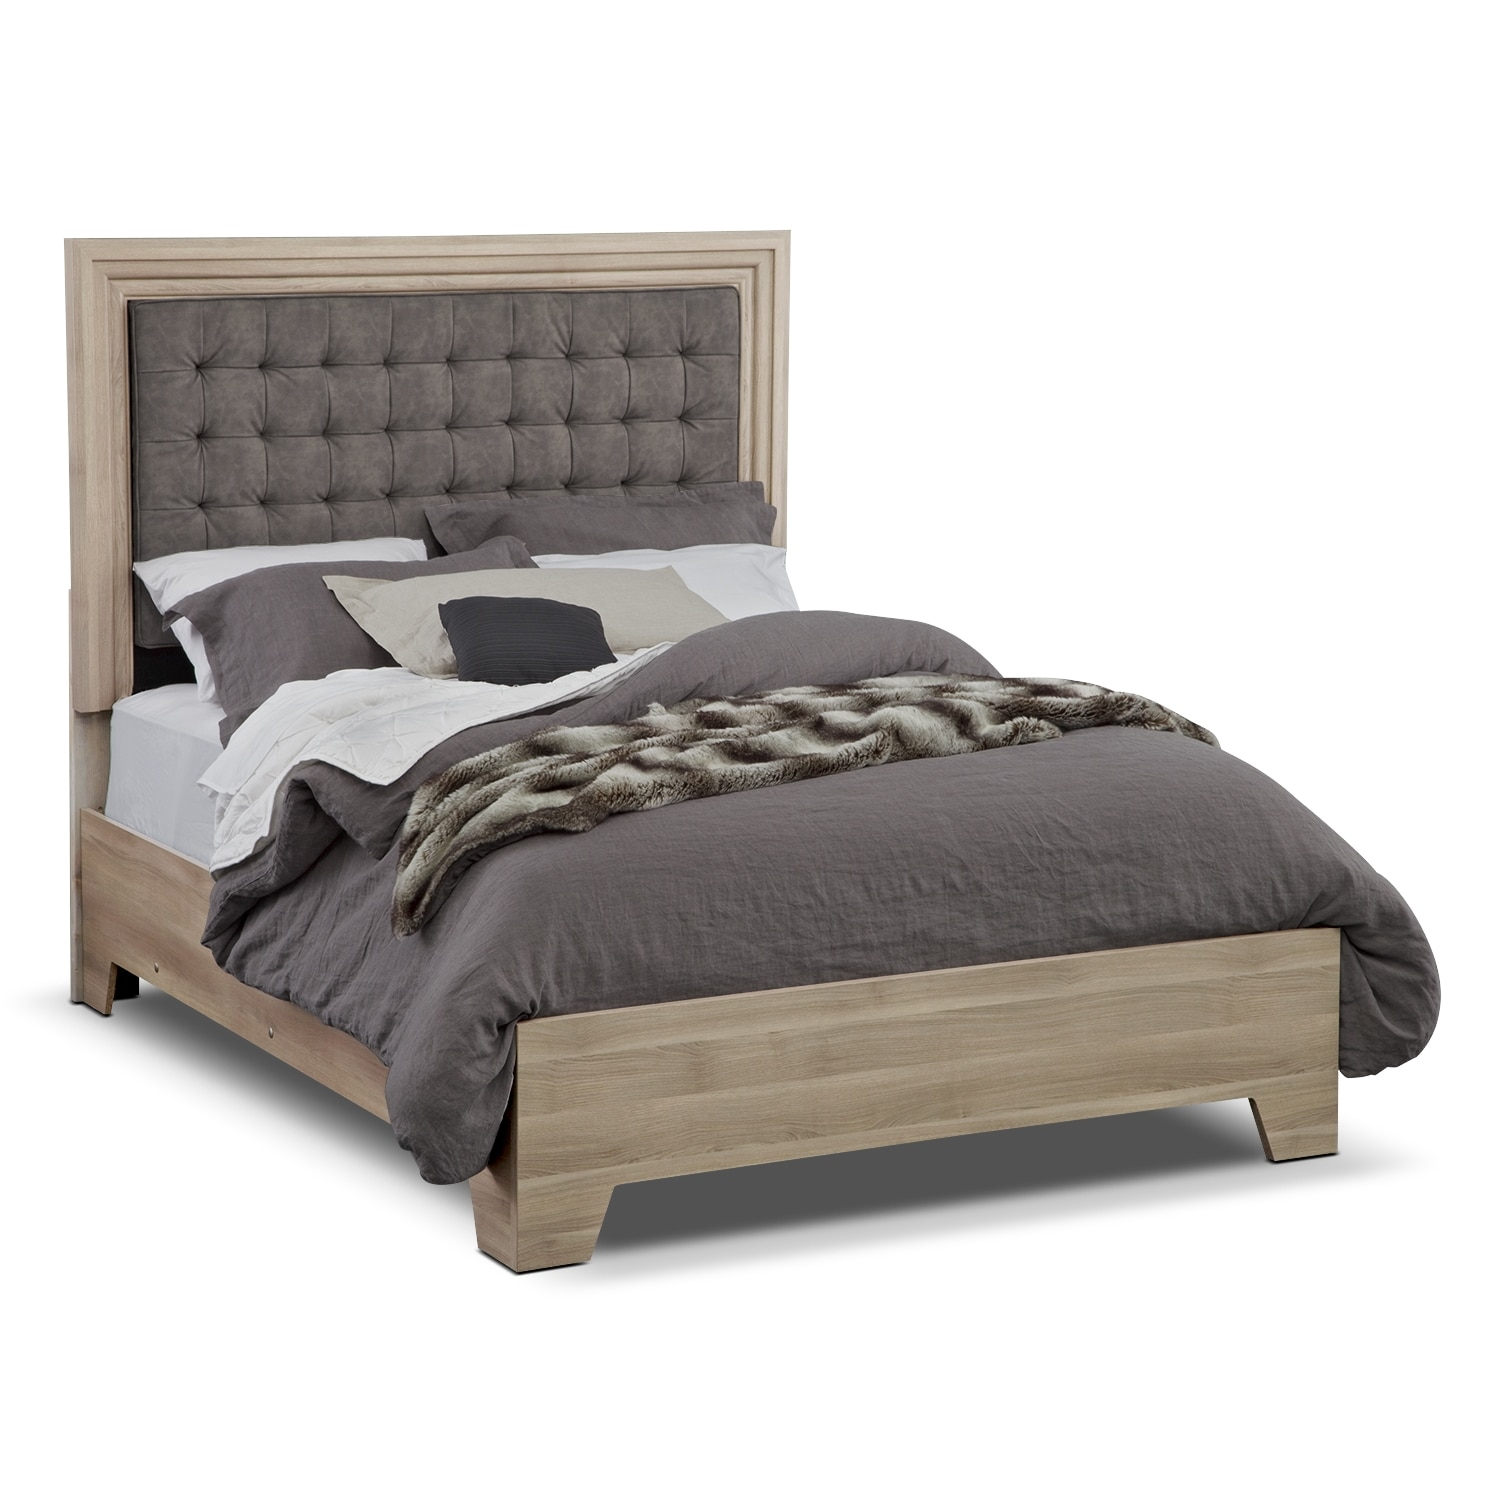 [Siena King Bed]